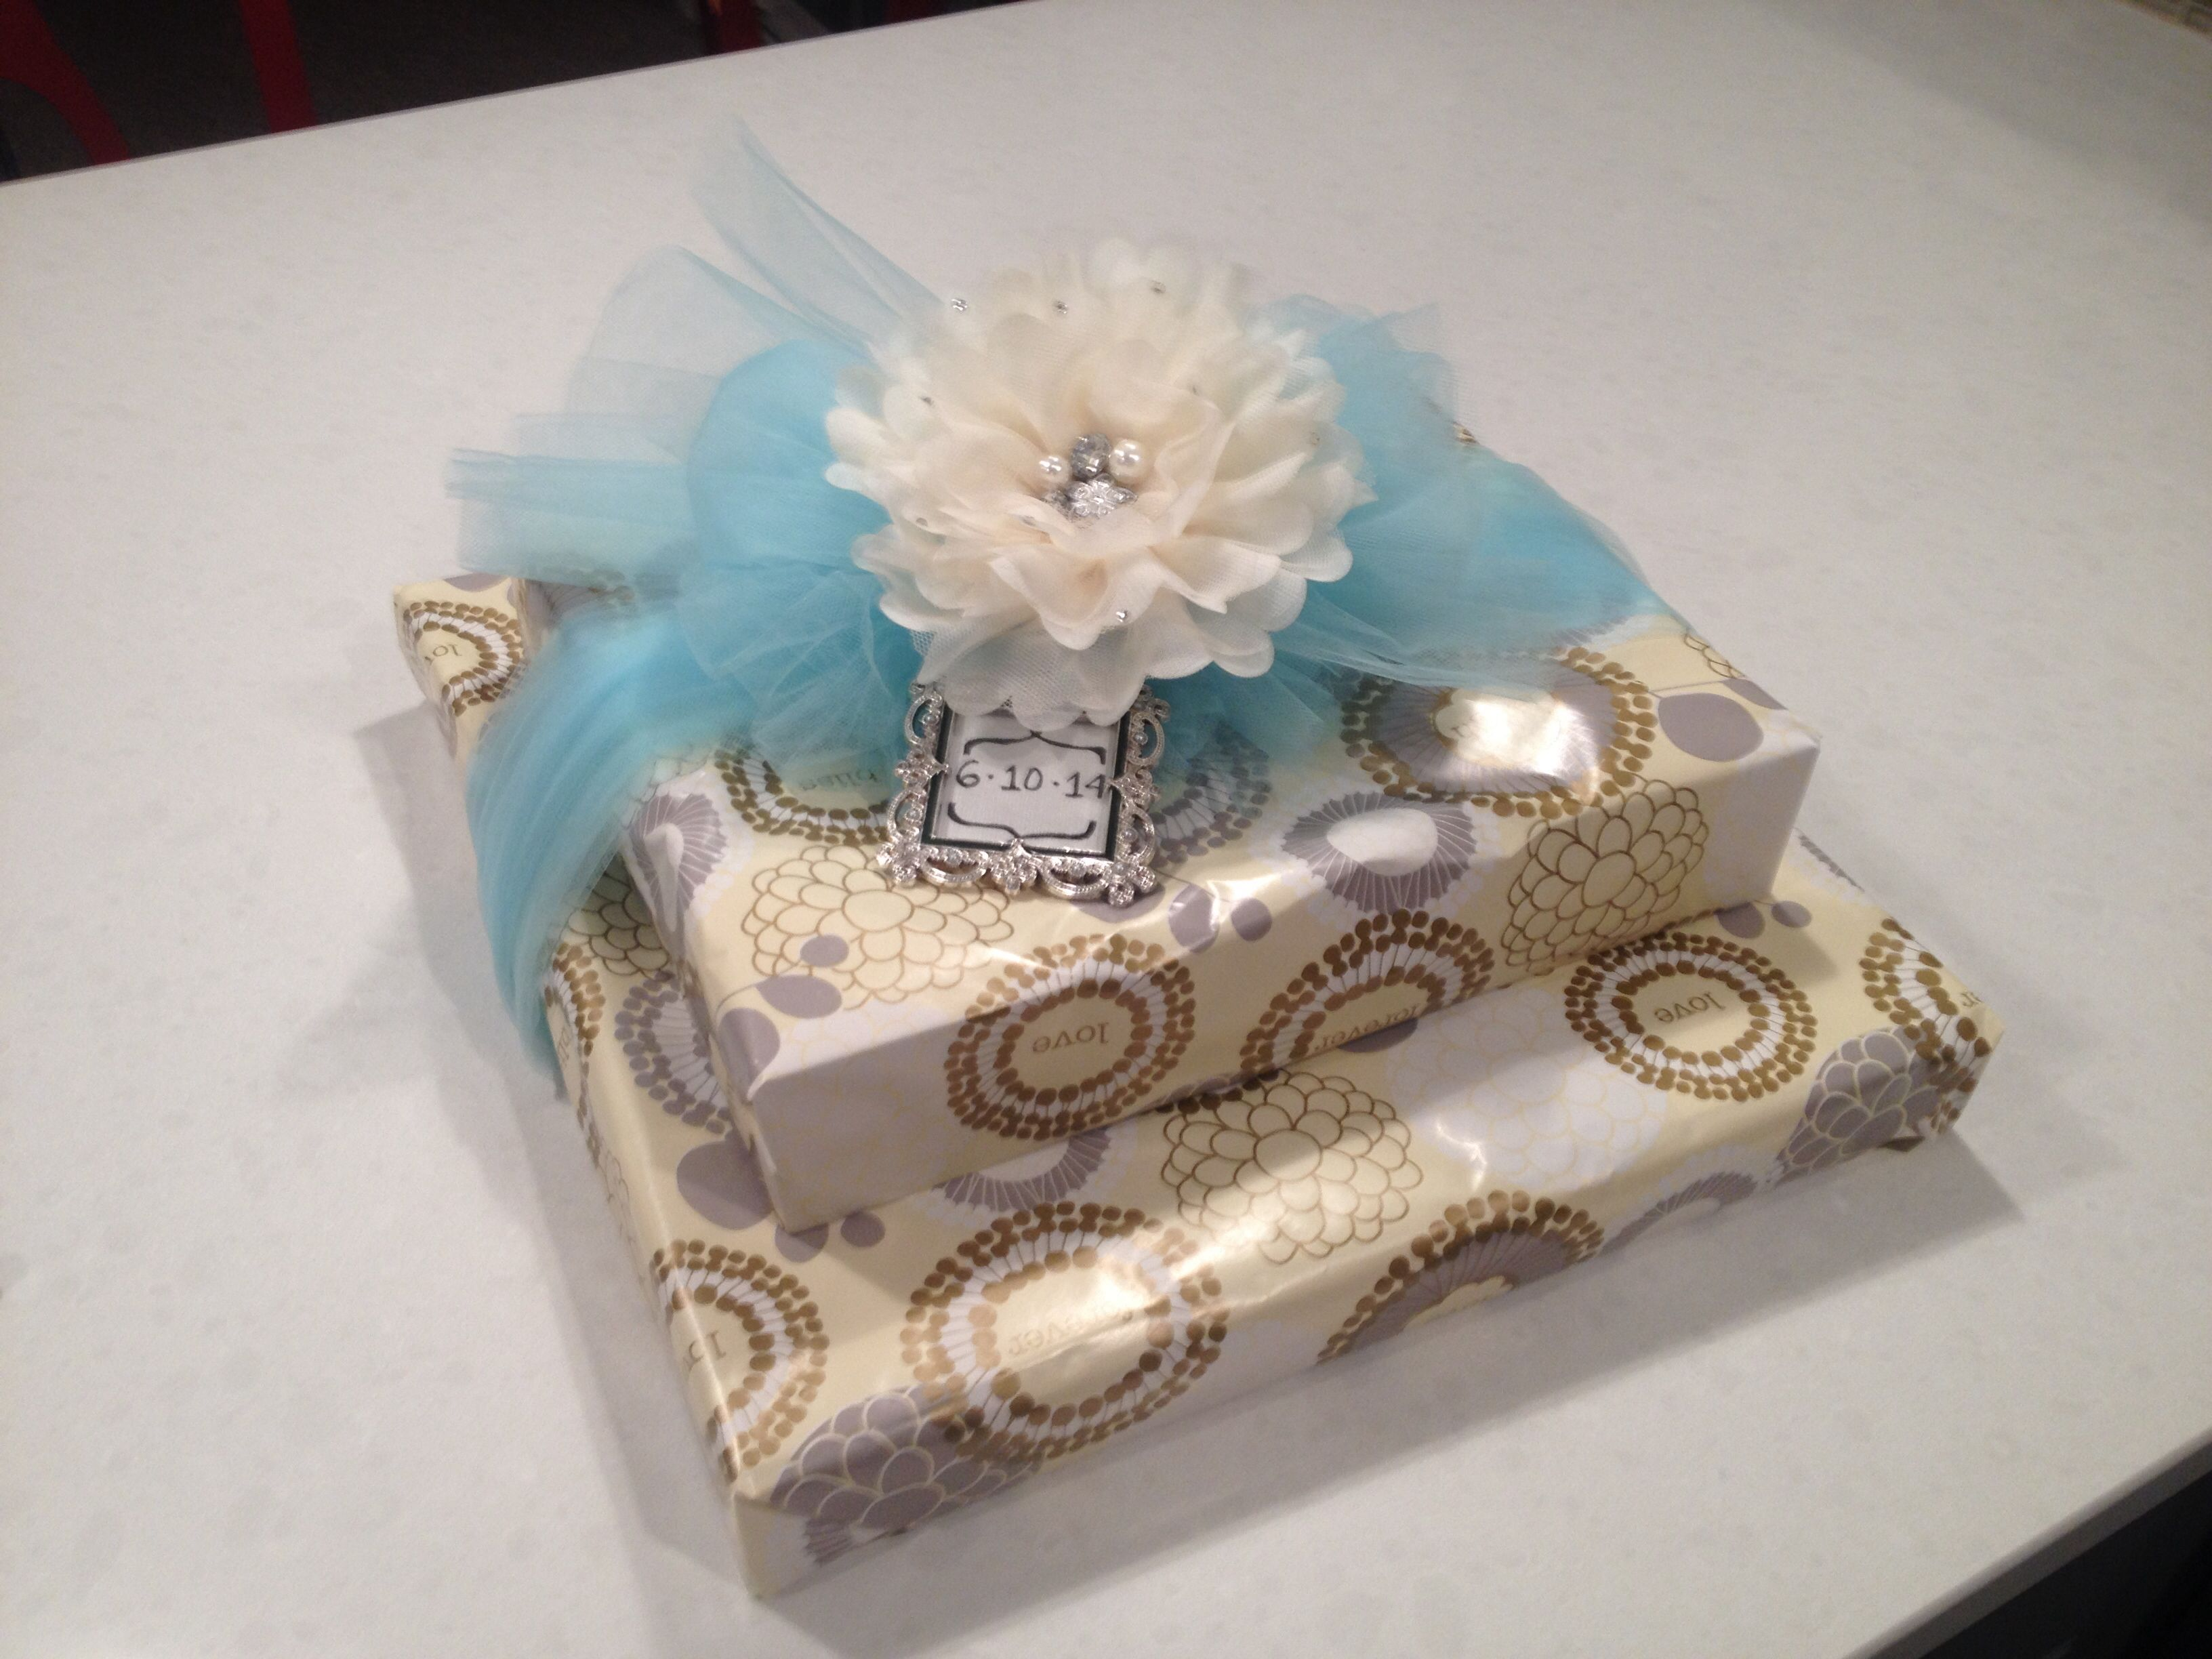 Bridal Shower Gift Wrapped With Wedding Date On Tiny Frame